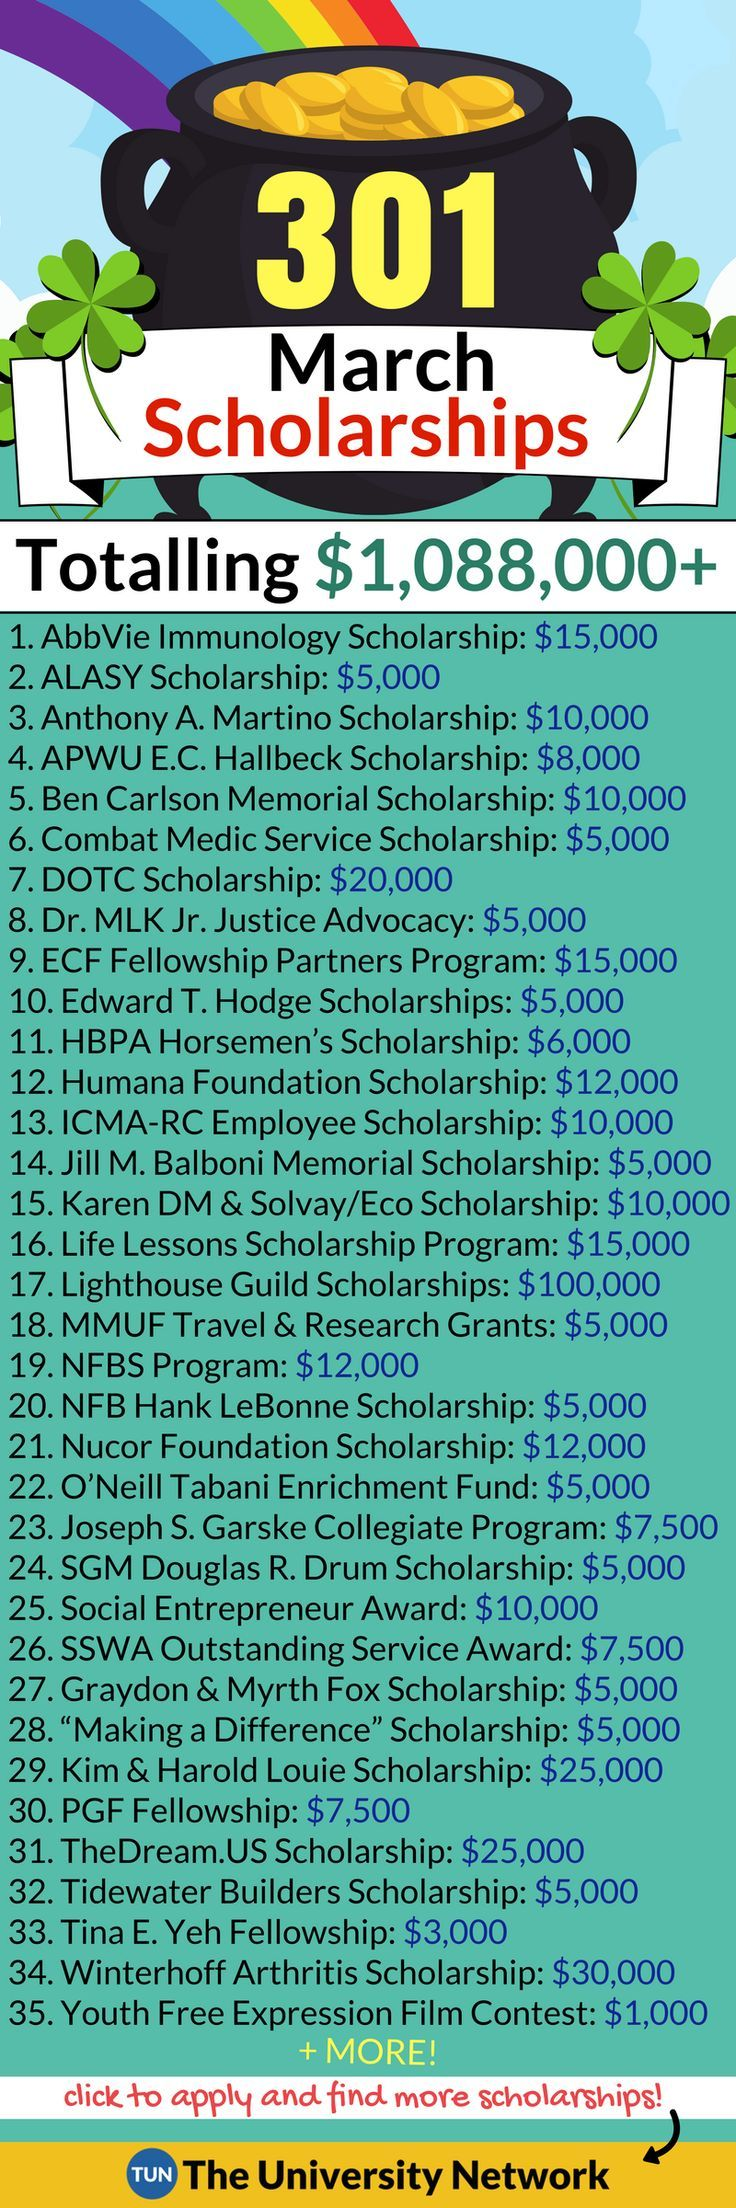 Here is a selected list of March 2018 Scholarships.